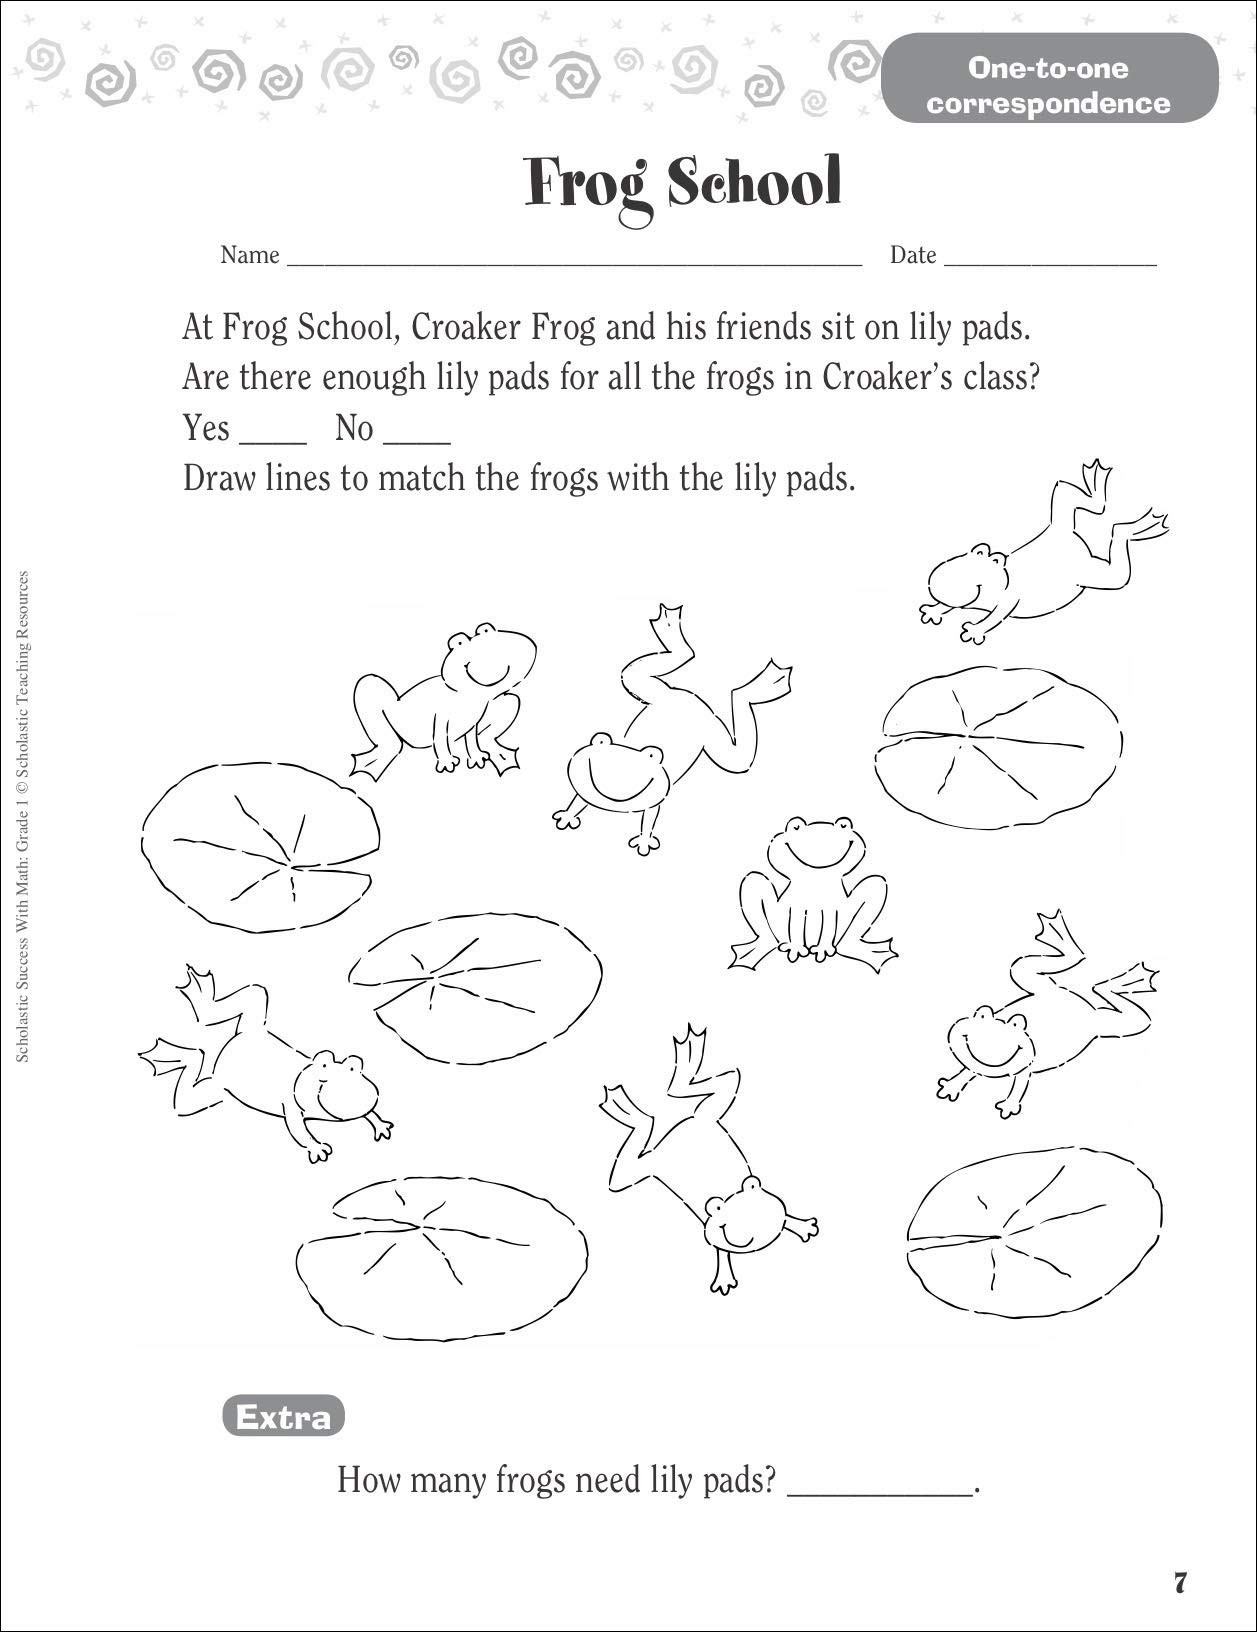 Coordinate Plane Worksheets 5th Grade Graph Paper Notepad Coordinate Grid Worksheets Using Graphic